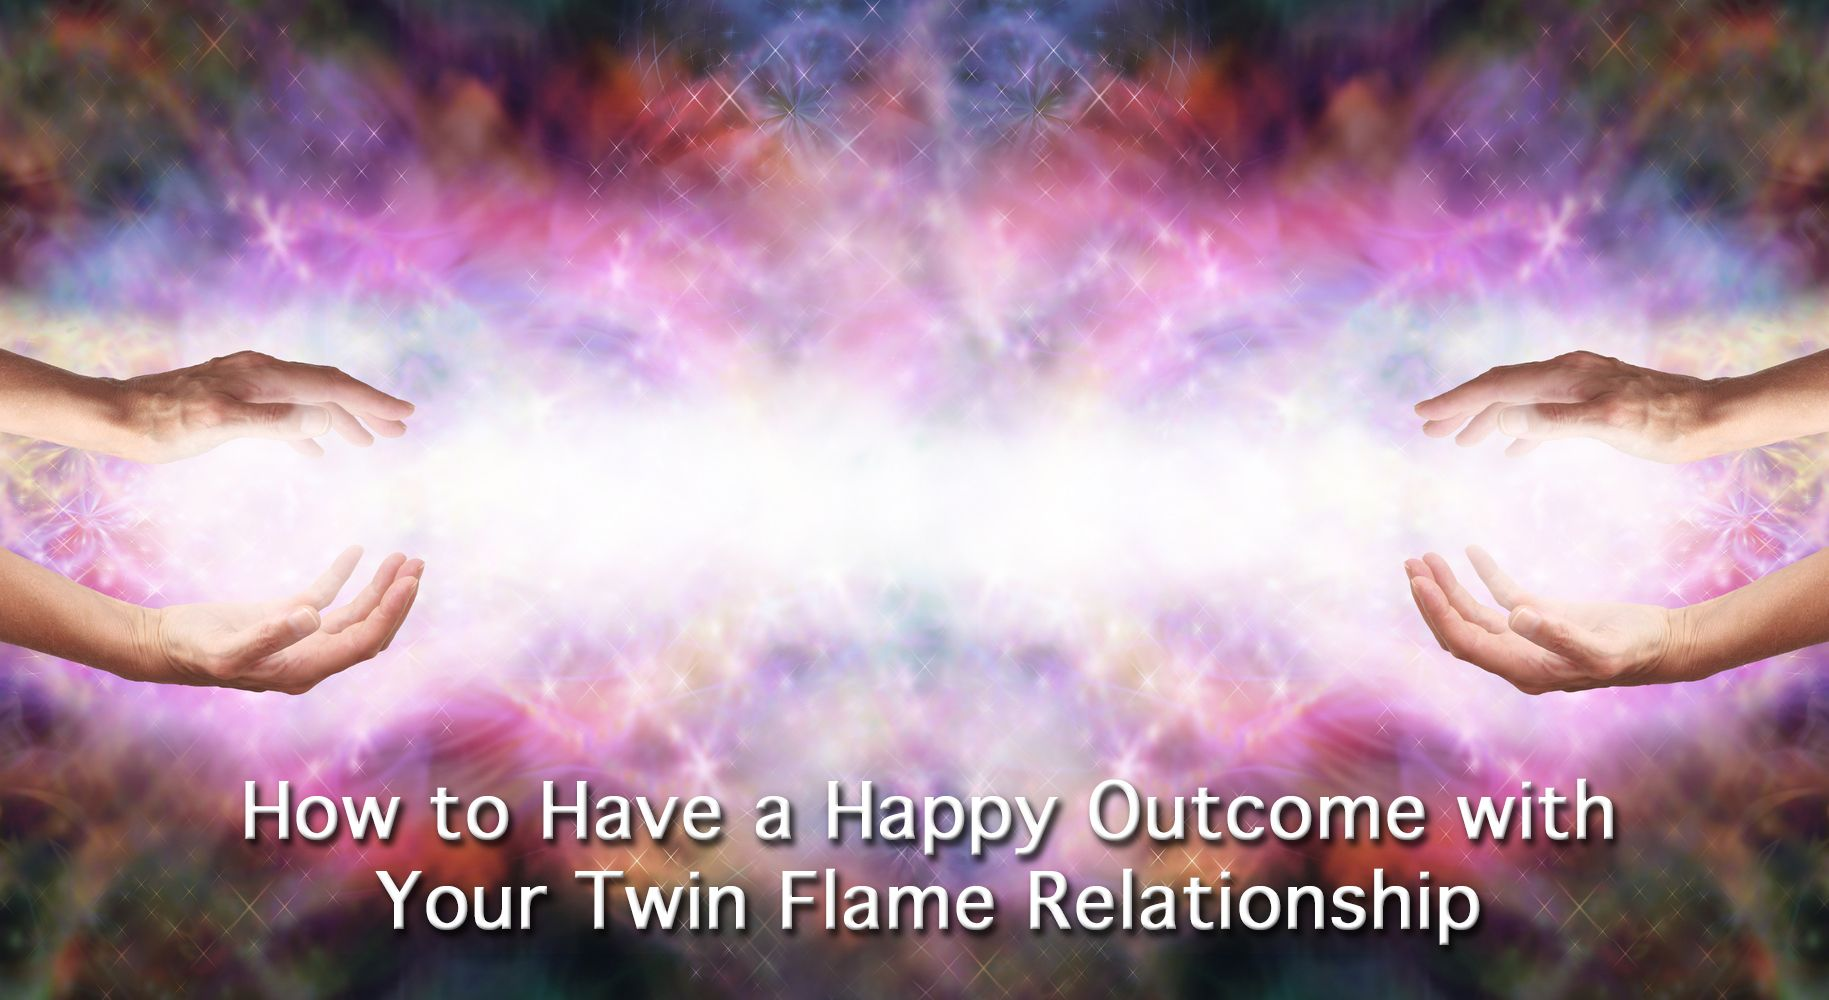 Difference Between Obsessive vs Twin Flame Relationships